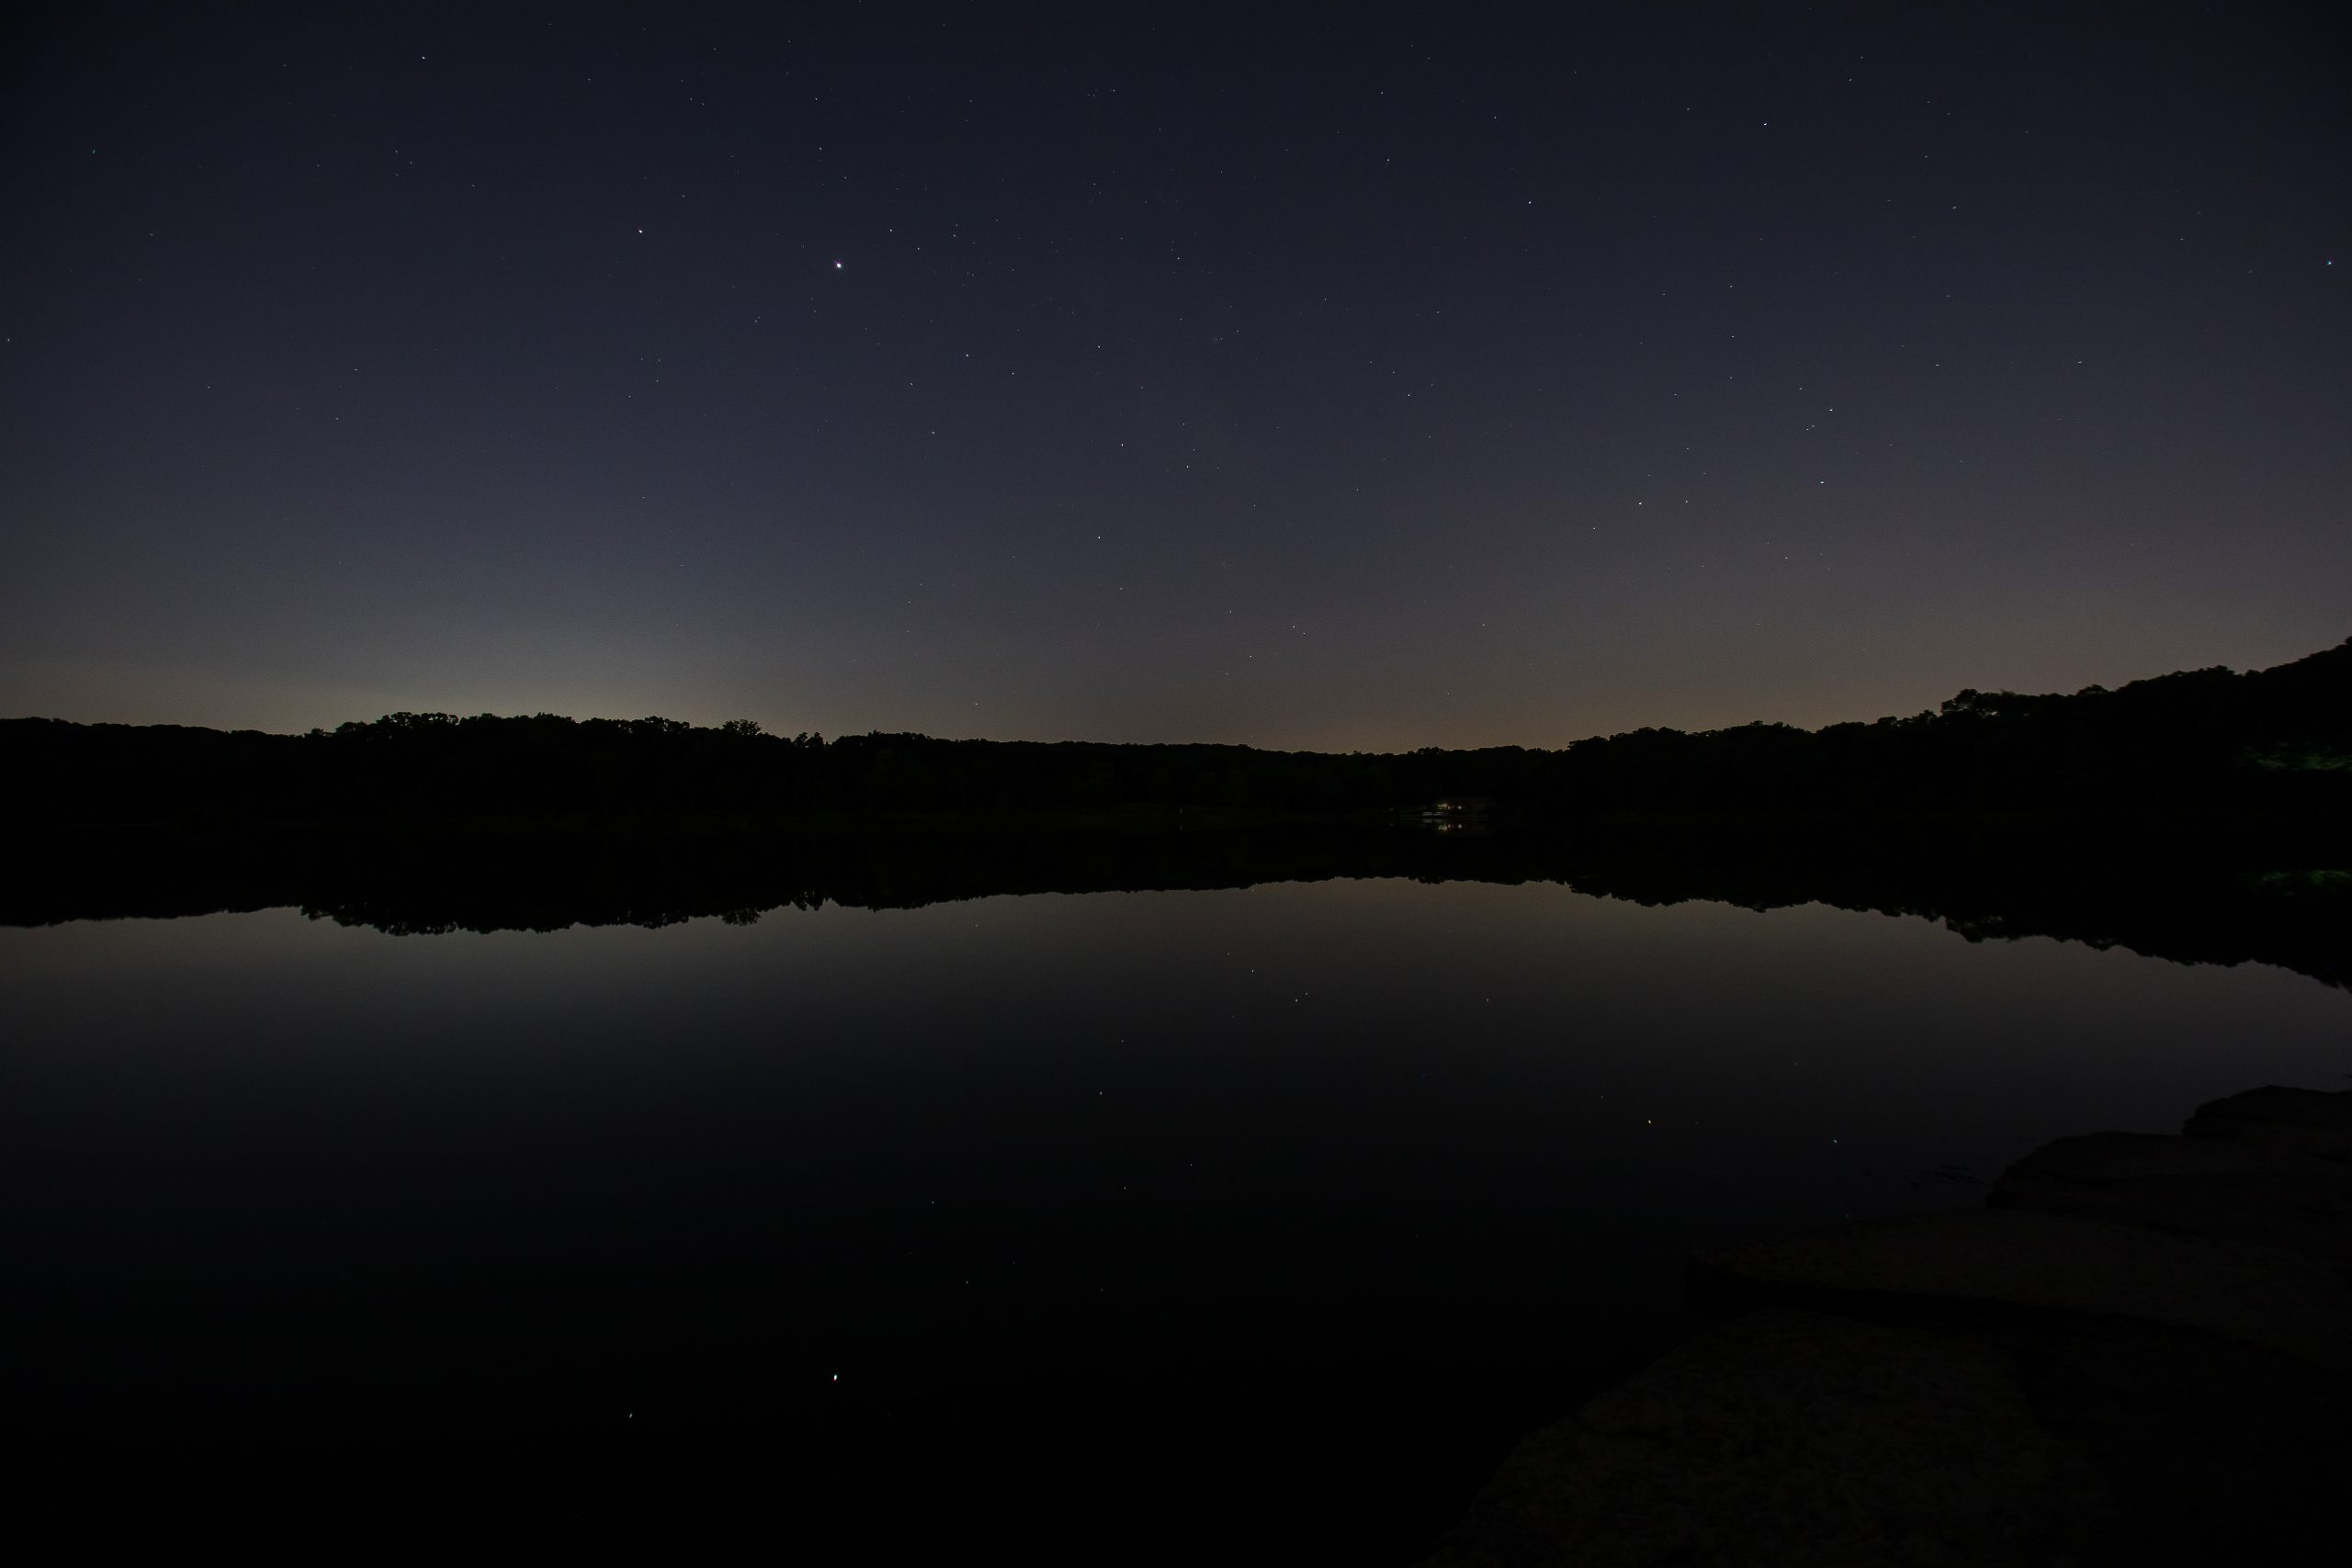 Image depicting the Urban Night Sky Place at night overlooking Maple Lake.